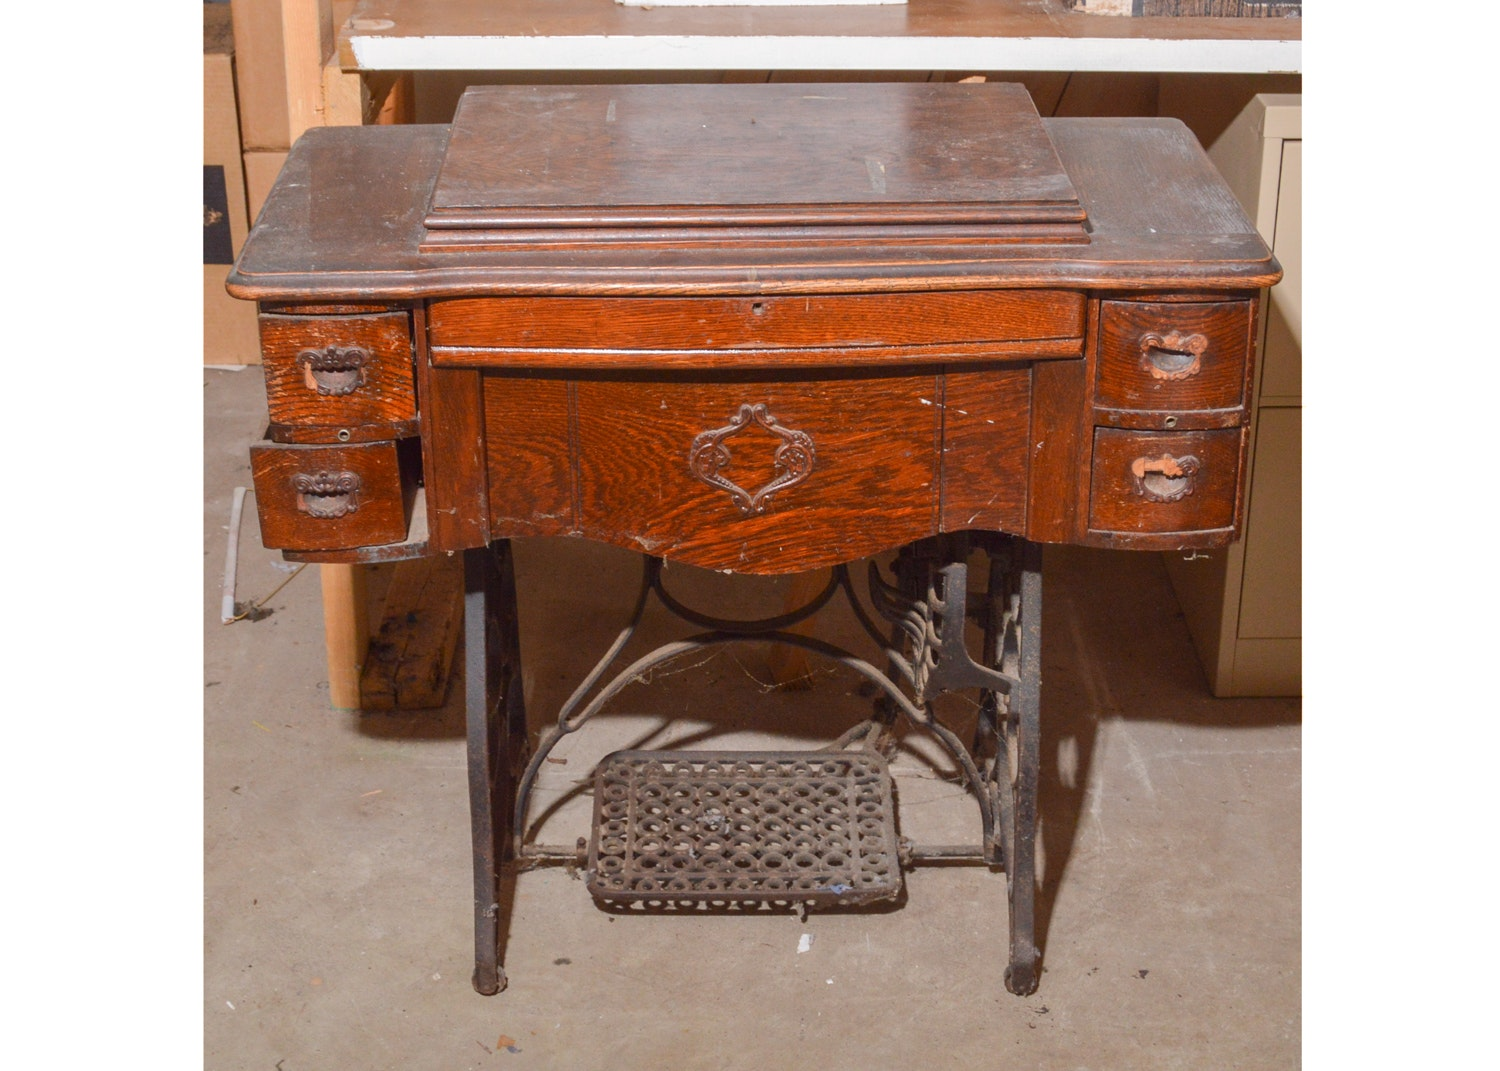 Antique Ruby Sewing Machine and Table